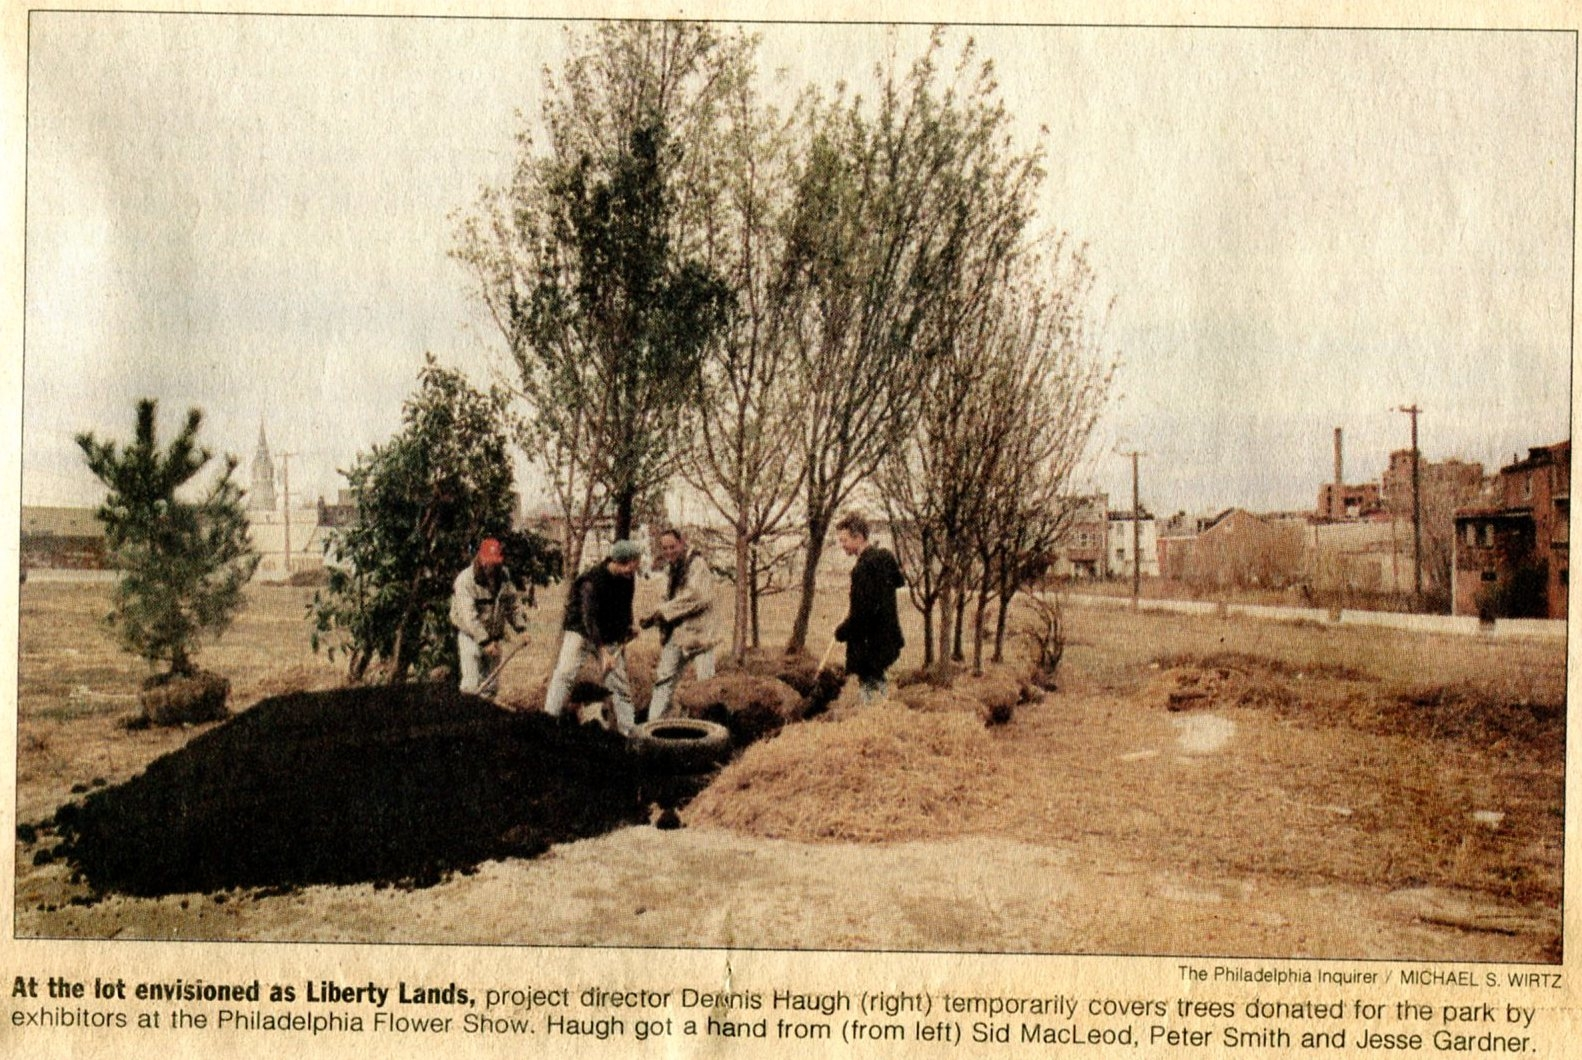 Planting the first trees in Liberty Lands circa 1997